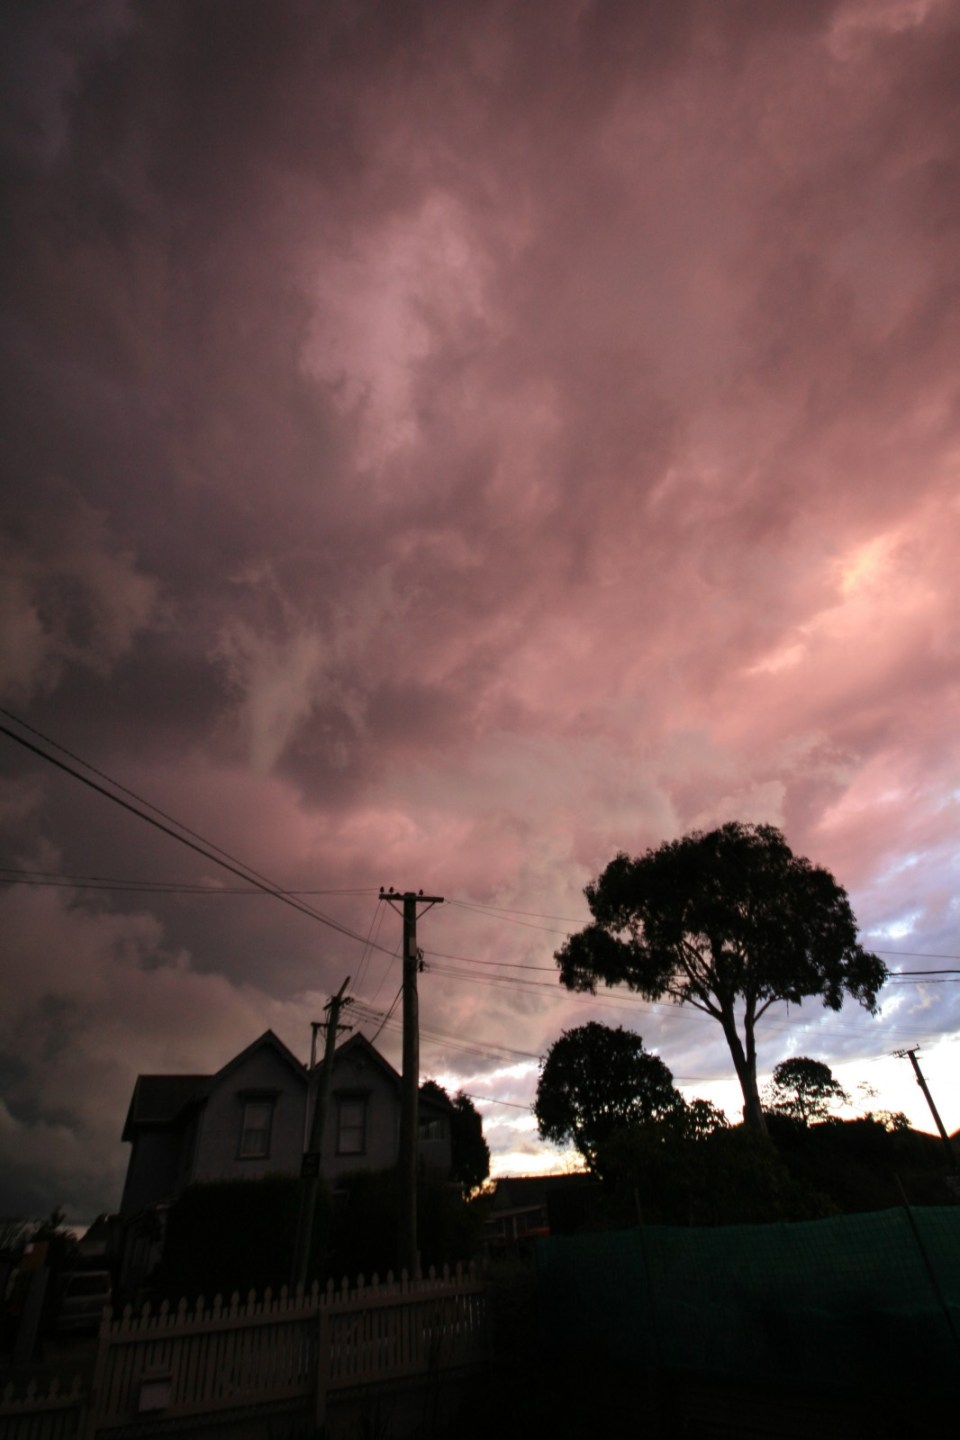 pink and blue sky as the sun was setting just prior to a lightning storm